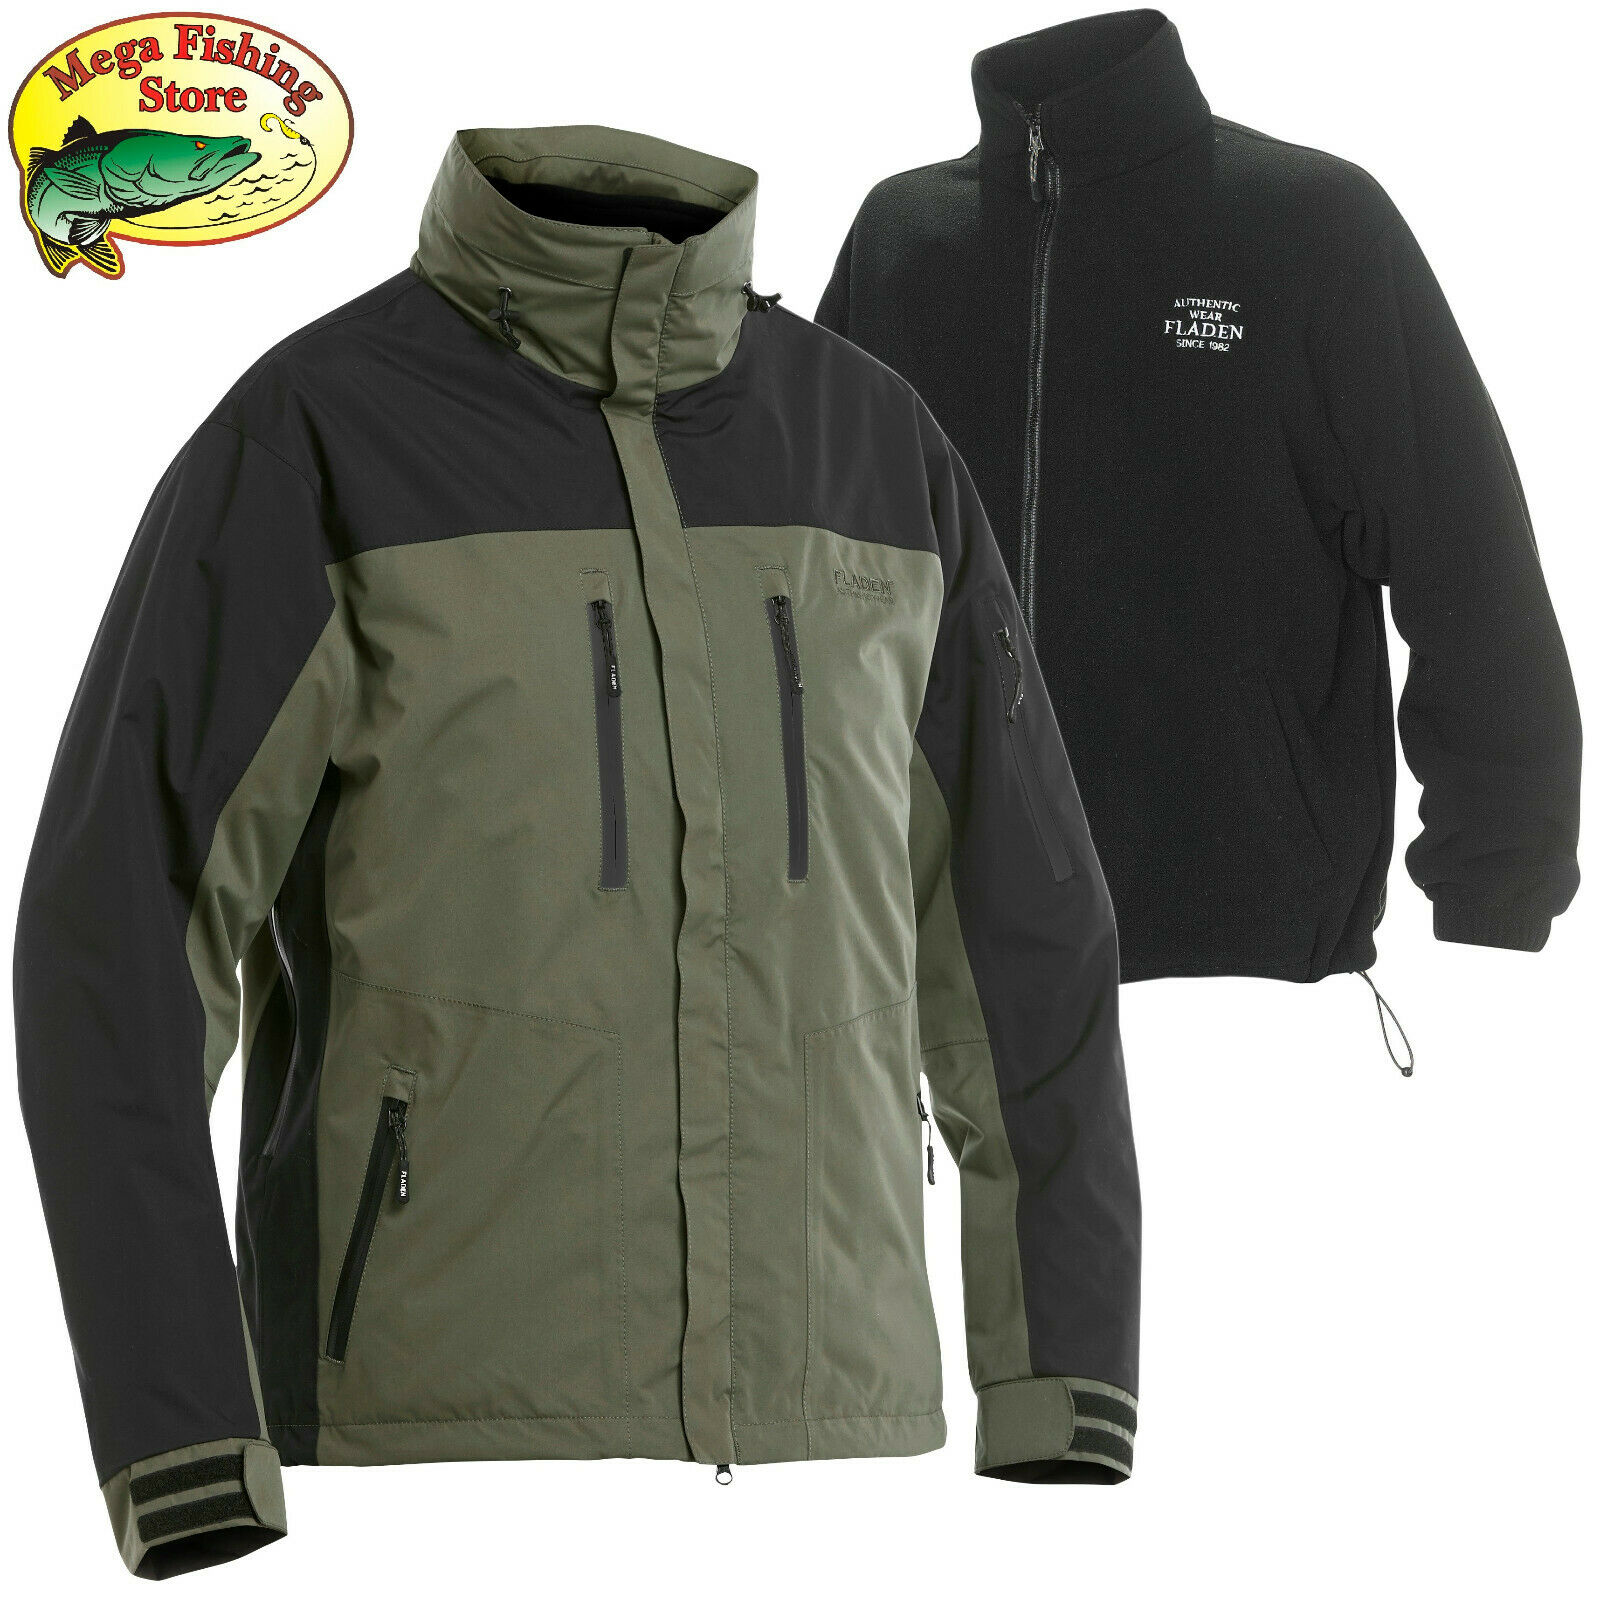 Fladen authentic 3in1 outdoor chaqueta-ocio & angel chaqueta viento - & impermeable